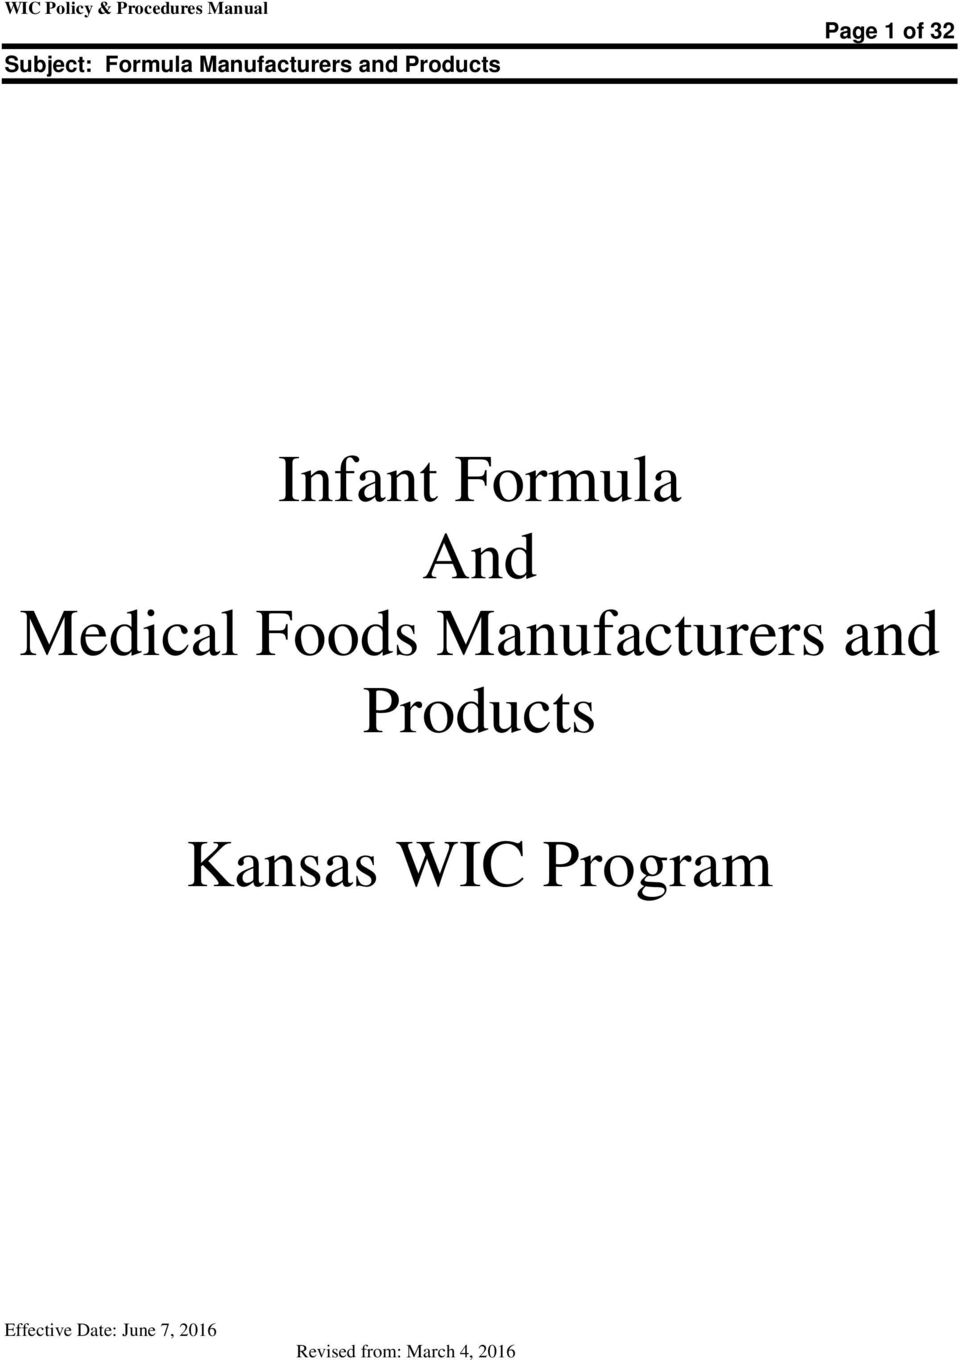 23908862 Infant Formula And Medical Foods Manufacturers And Products on 100 Campus Drive Florham Park